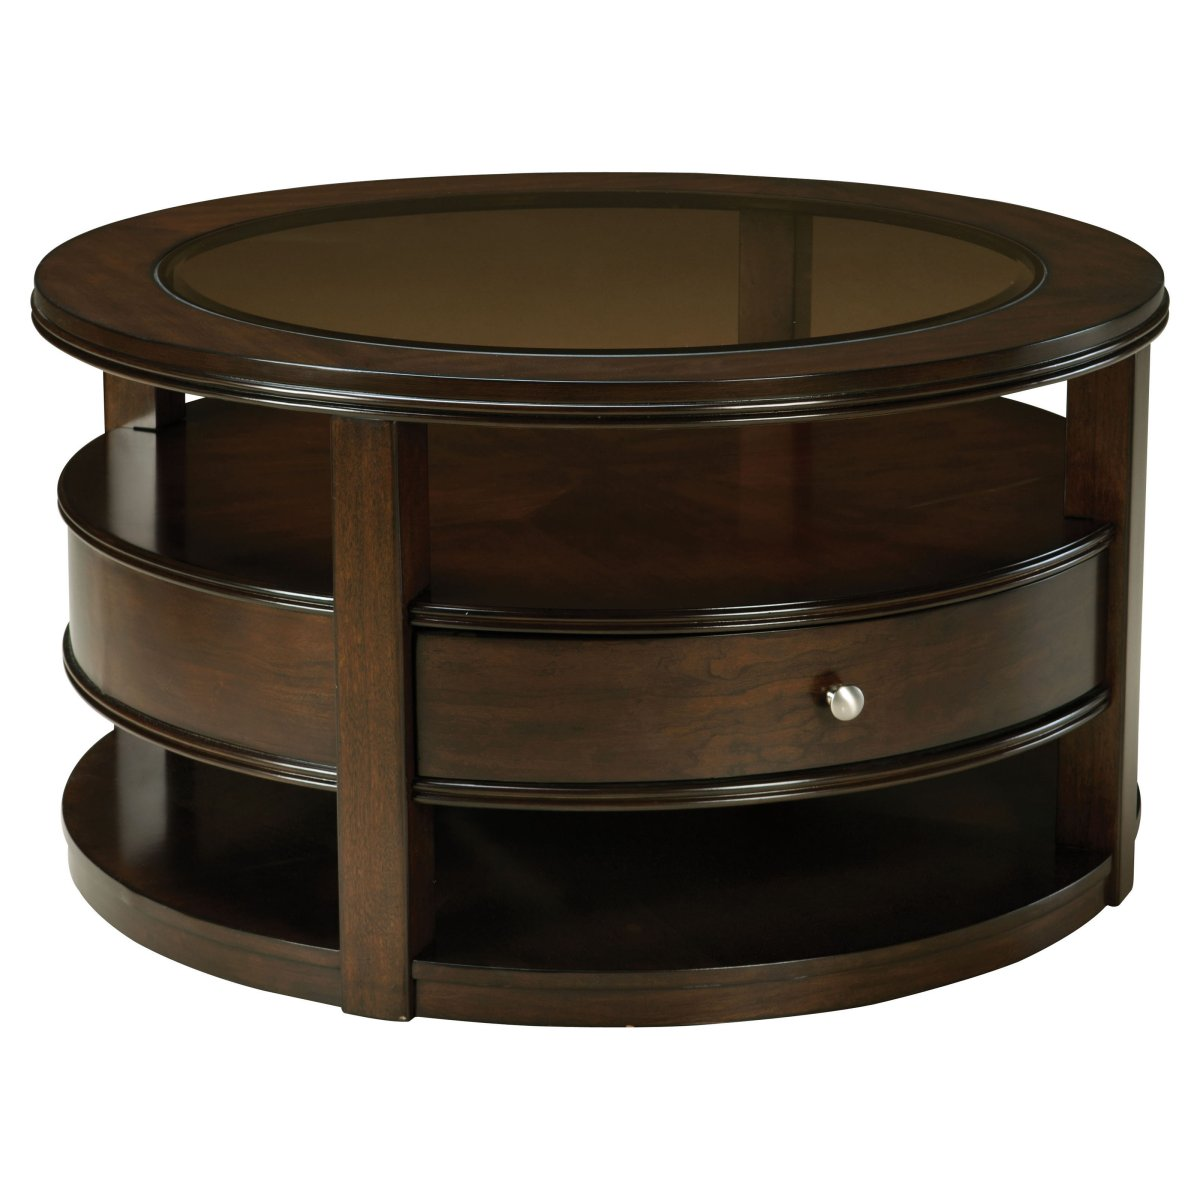 Awesome round coffee tables with storage homesfeed What to put on a round coffee table